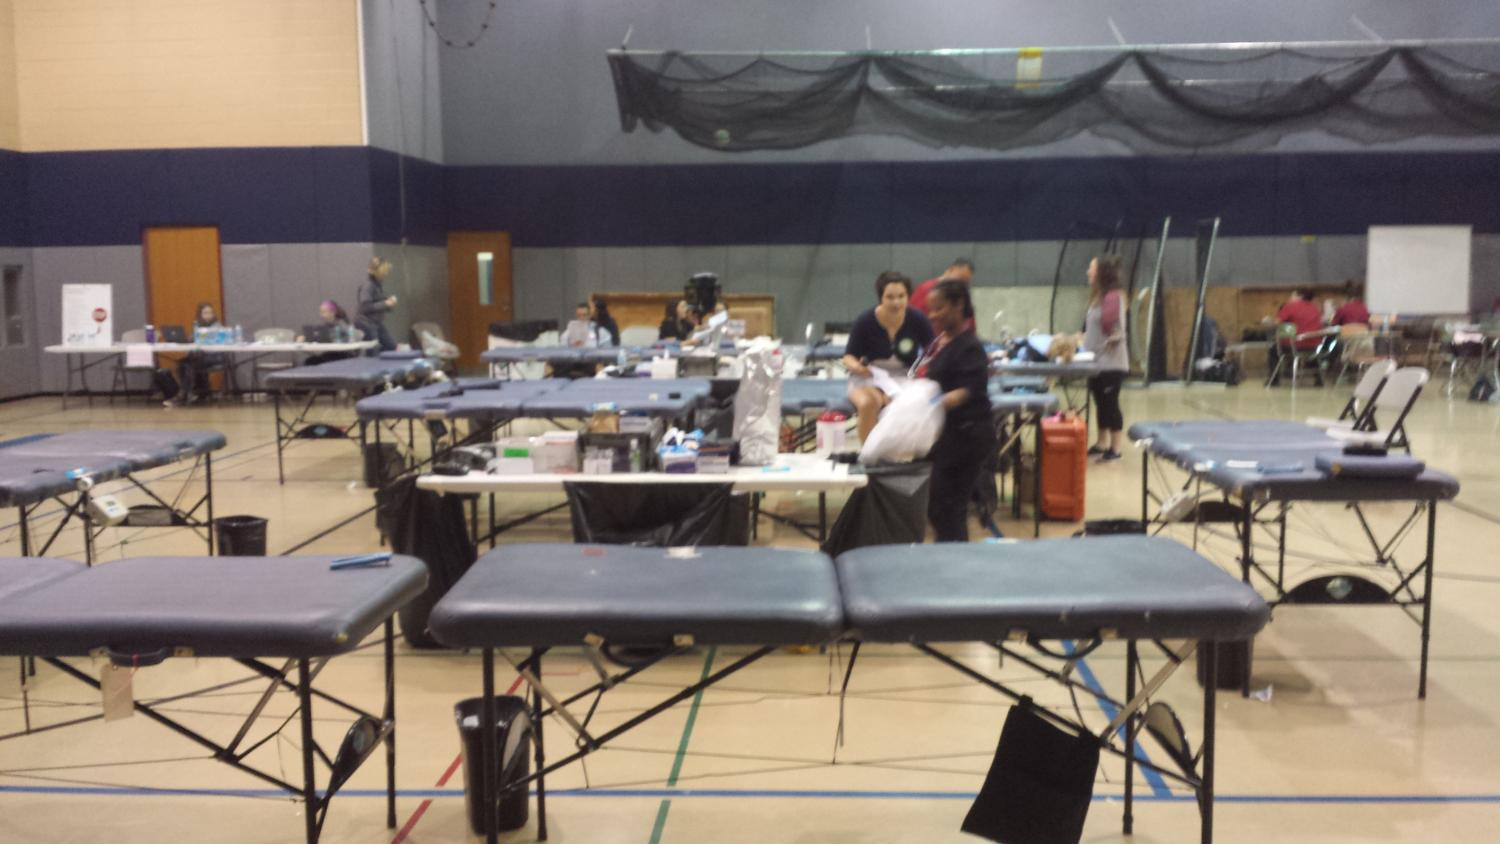 On Friday, May 12th, NPHS hosted the American Red Cross for the third blood drive of the year, organized by the National Honor Society.